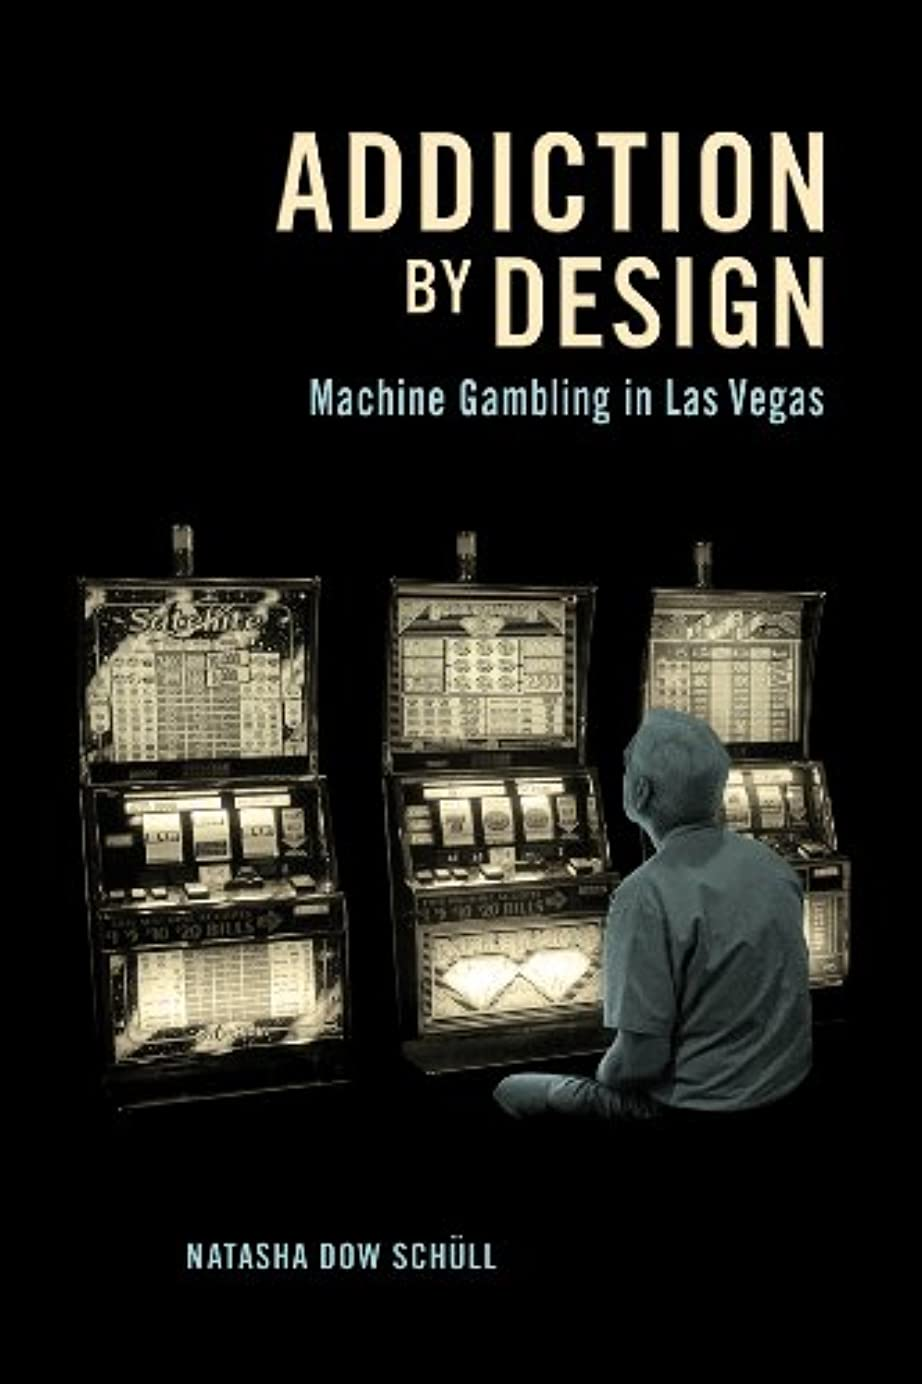 しないでくださいピストルトレイAddiction by Design: Machine Gambling in Las Vegas (English Edition)